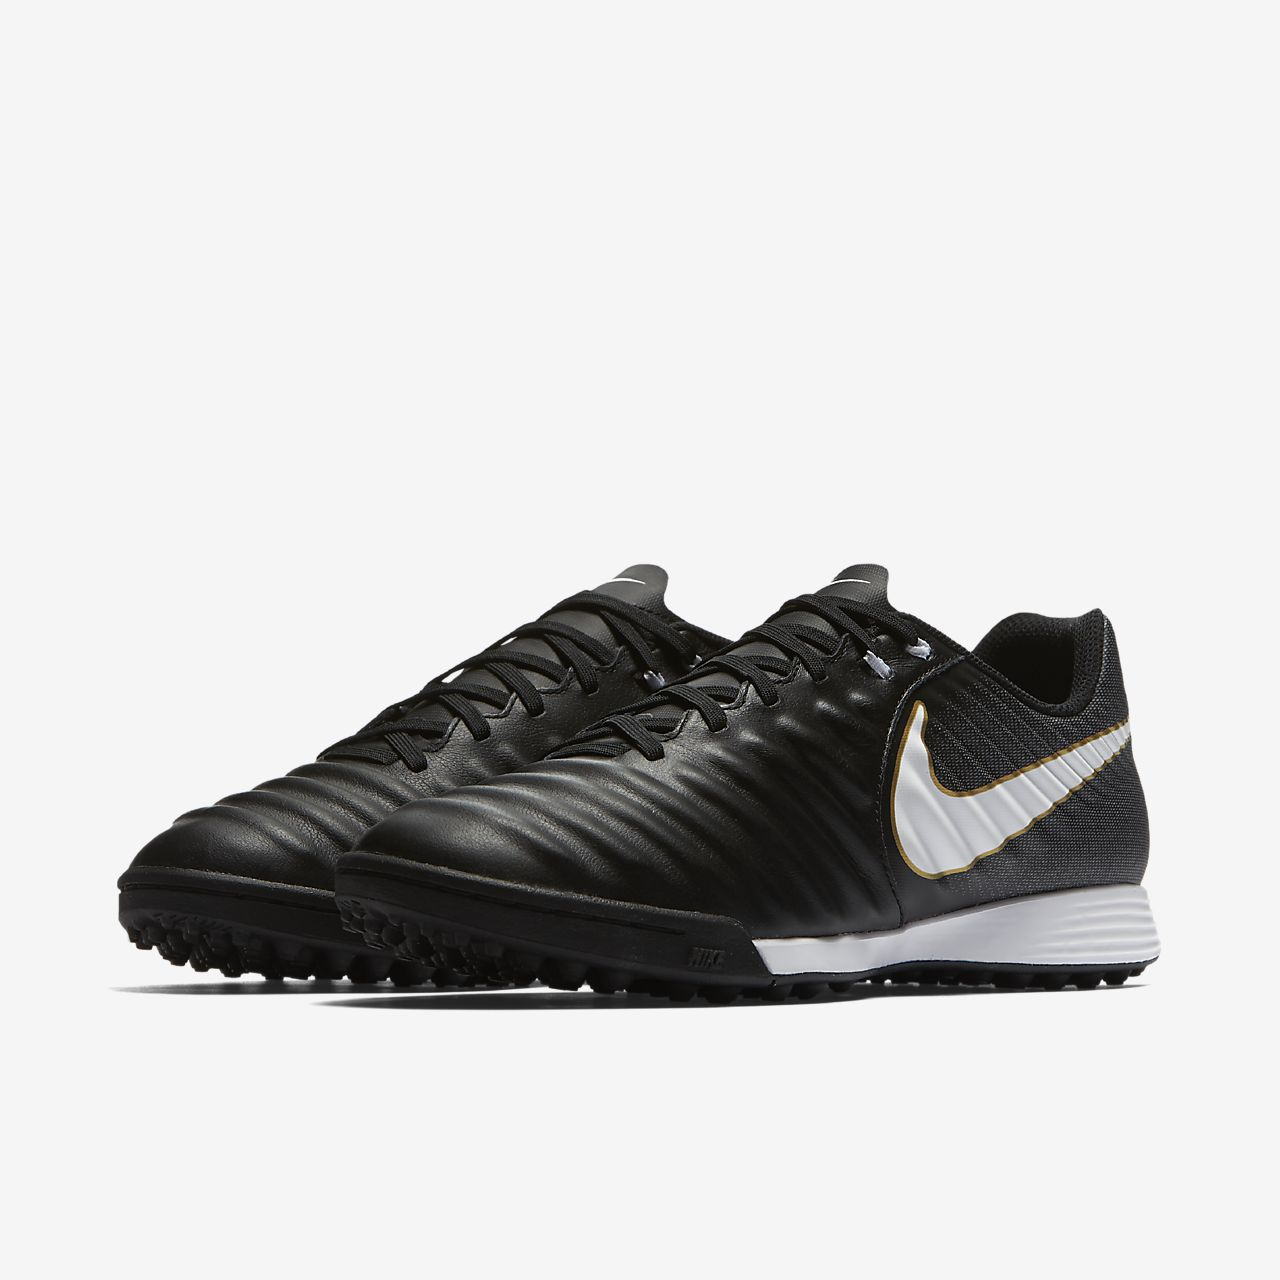 Legendx 7 Astro Turf Trainers In Black 897766-002 - Black NIKE SPORTWEAR